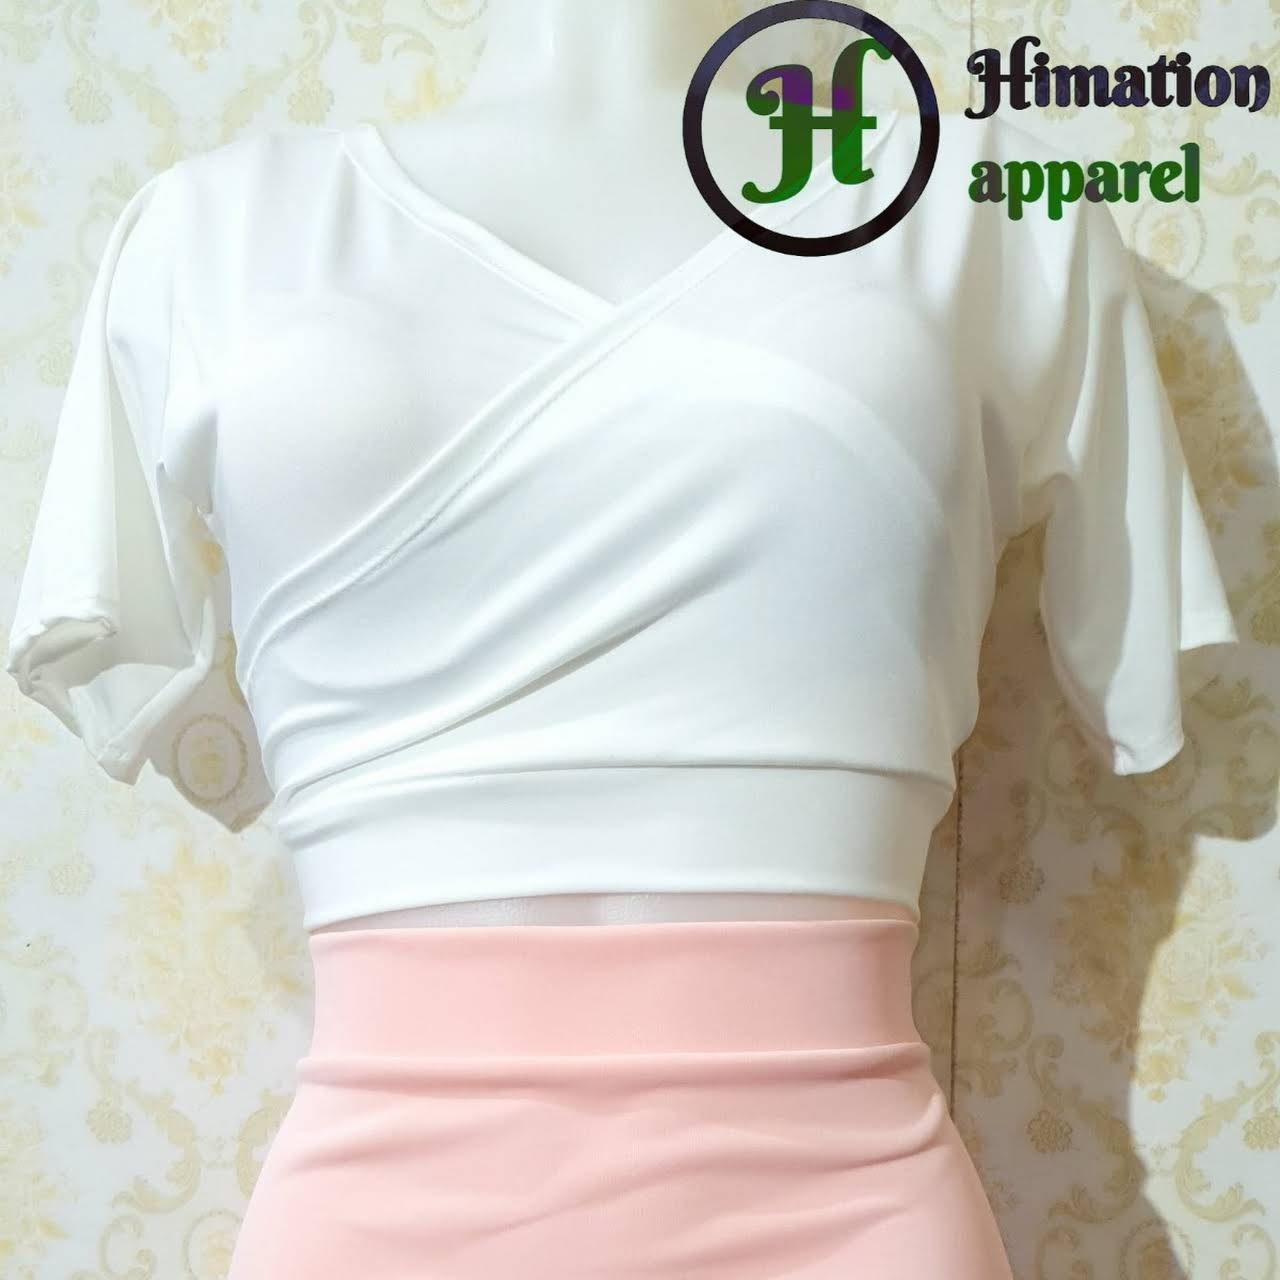 himation apparel wholesale supplier - Clothing Wholesaler in taytay